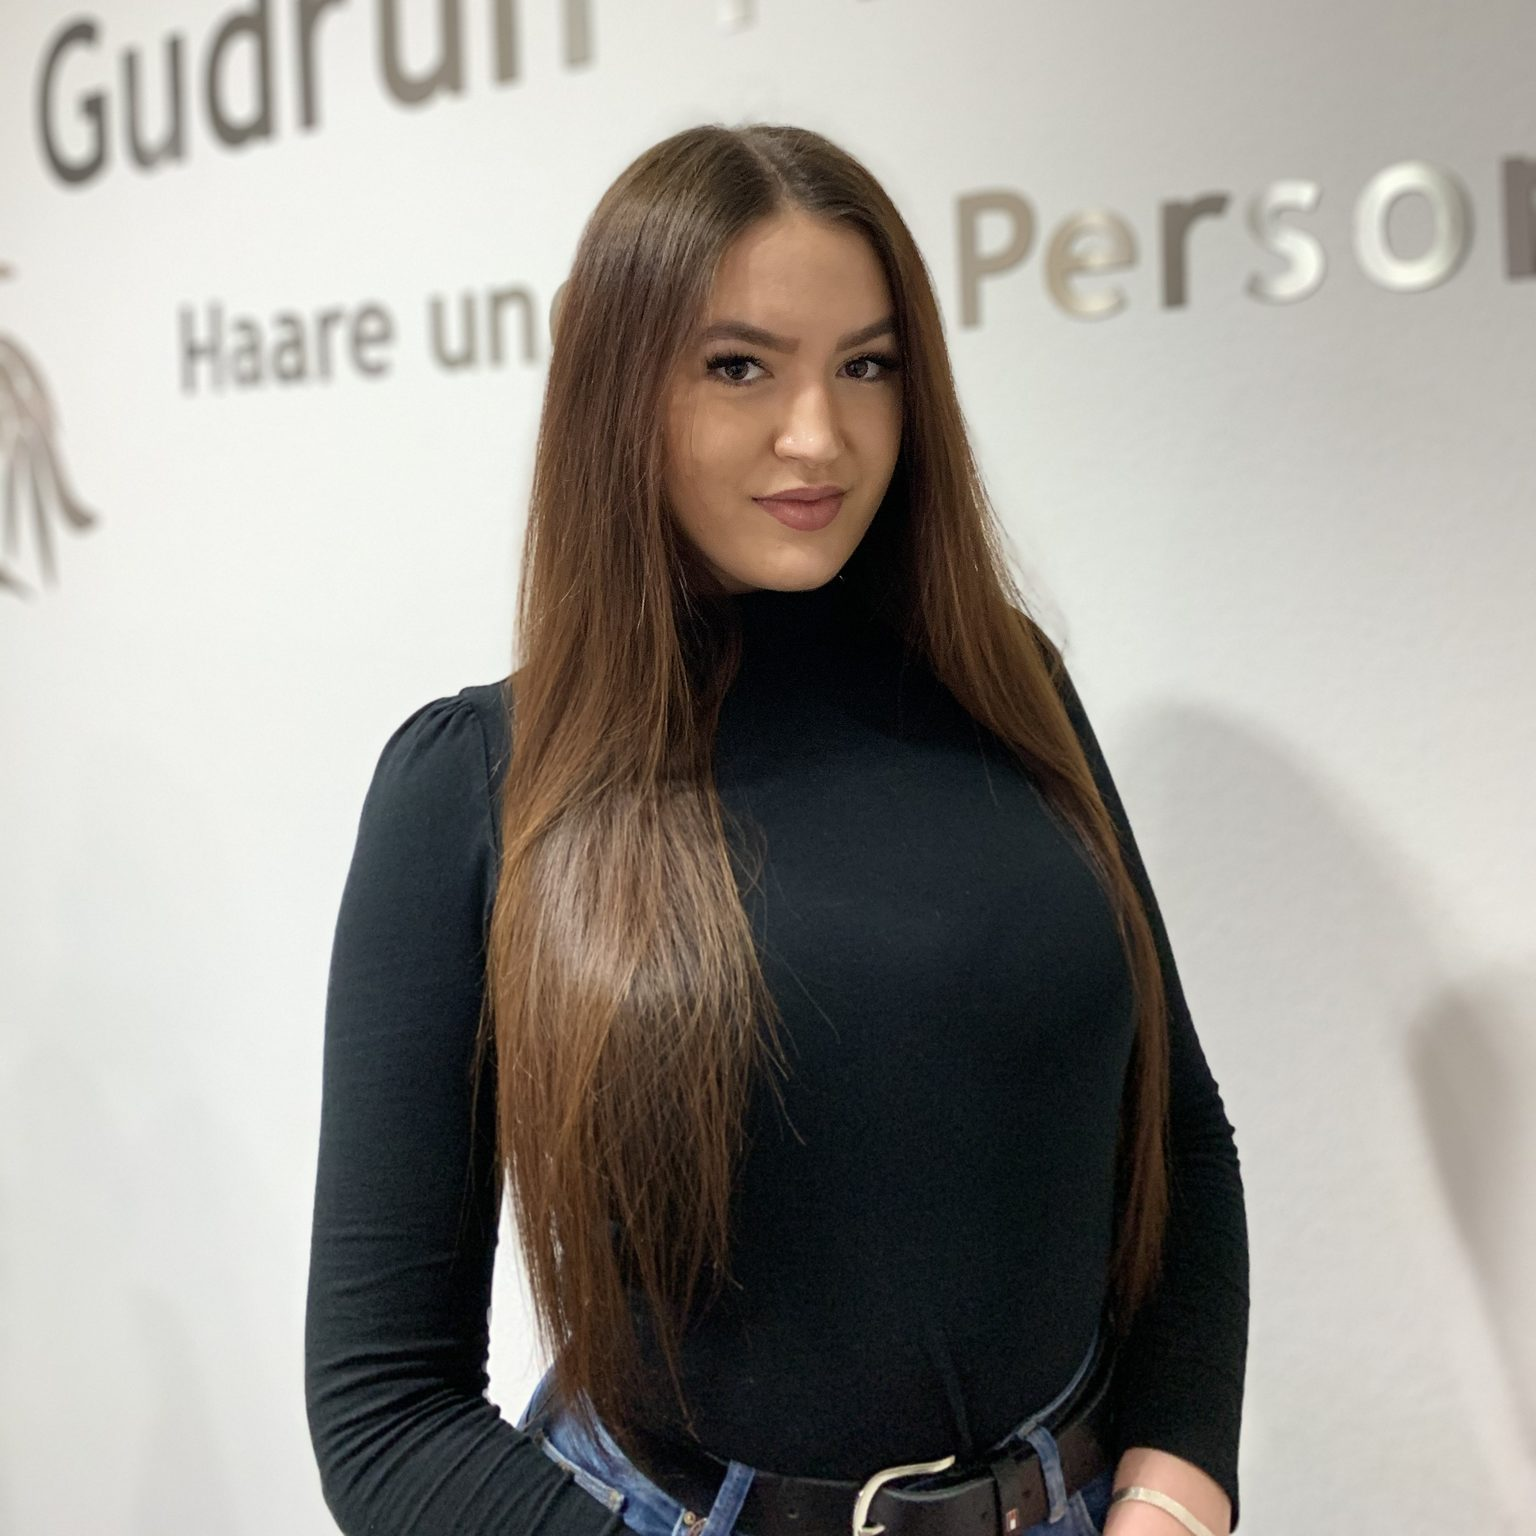 Diana - Youngster/ Neu im Team -